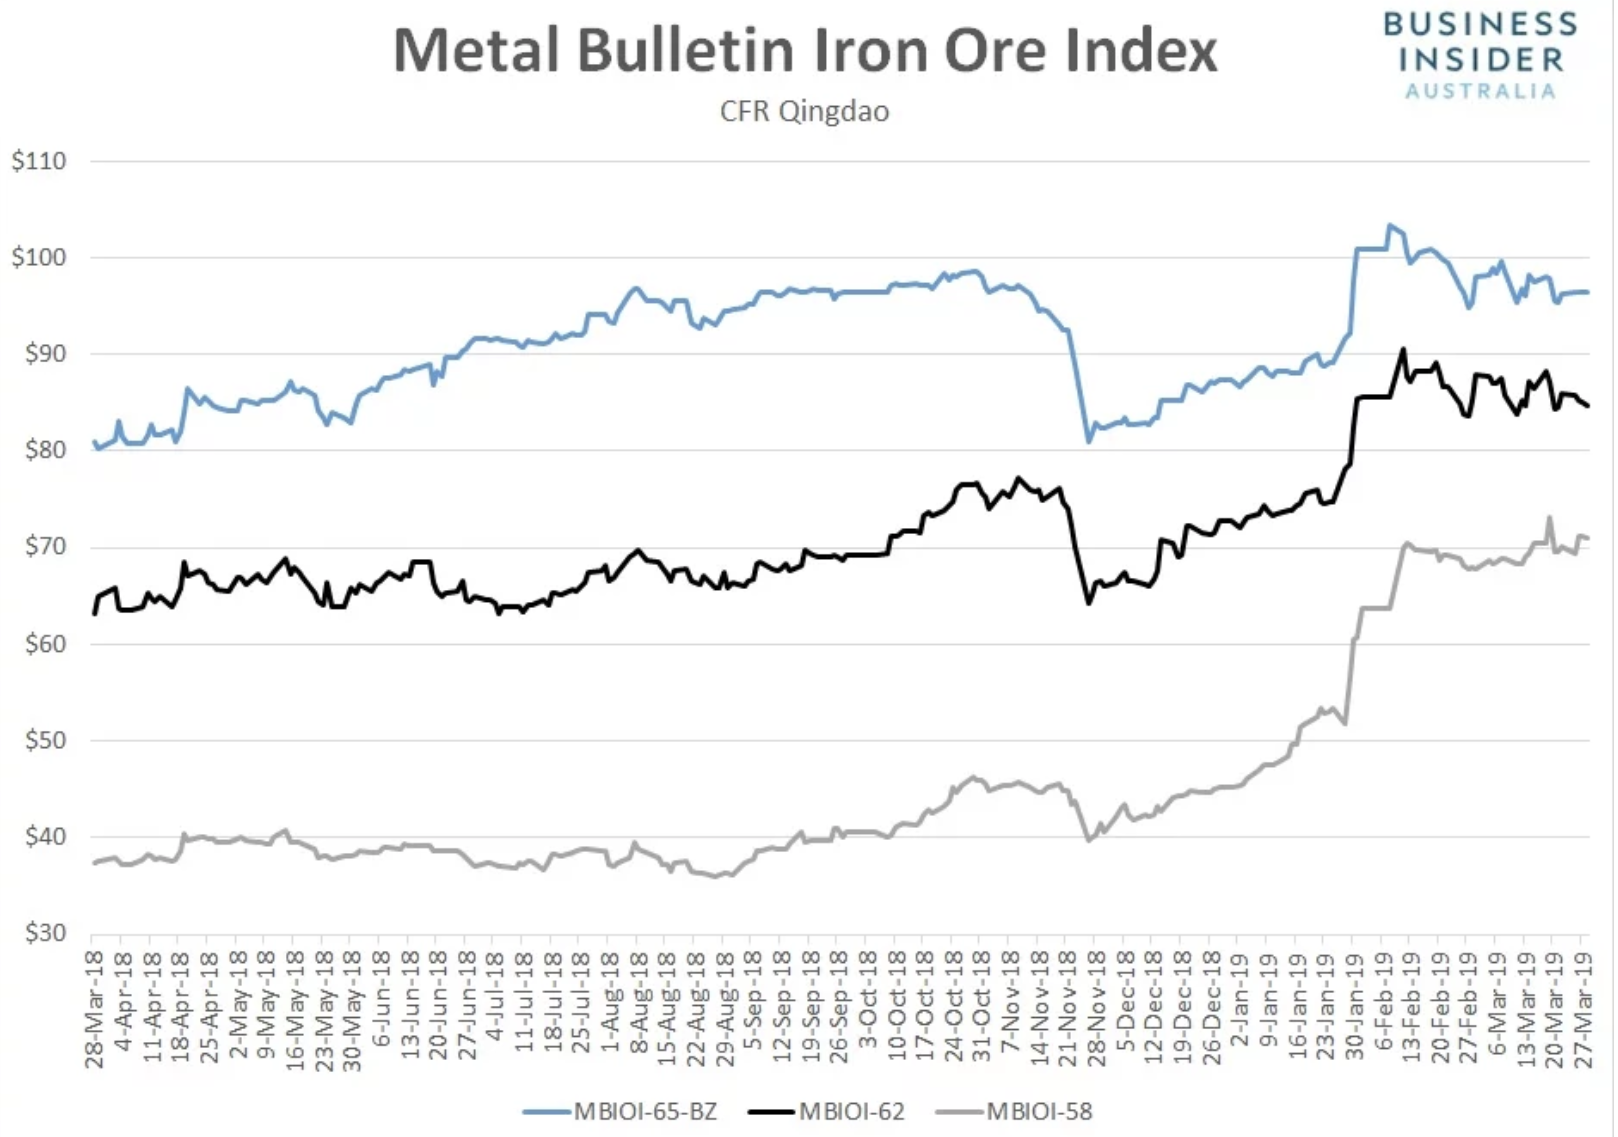 The prices of iron ore have stayed relatively strong over the past year or so.